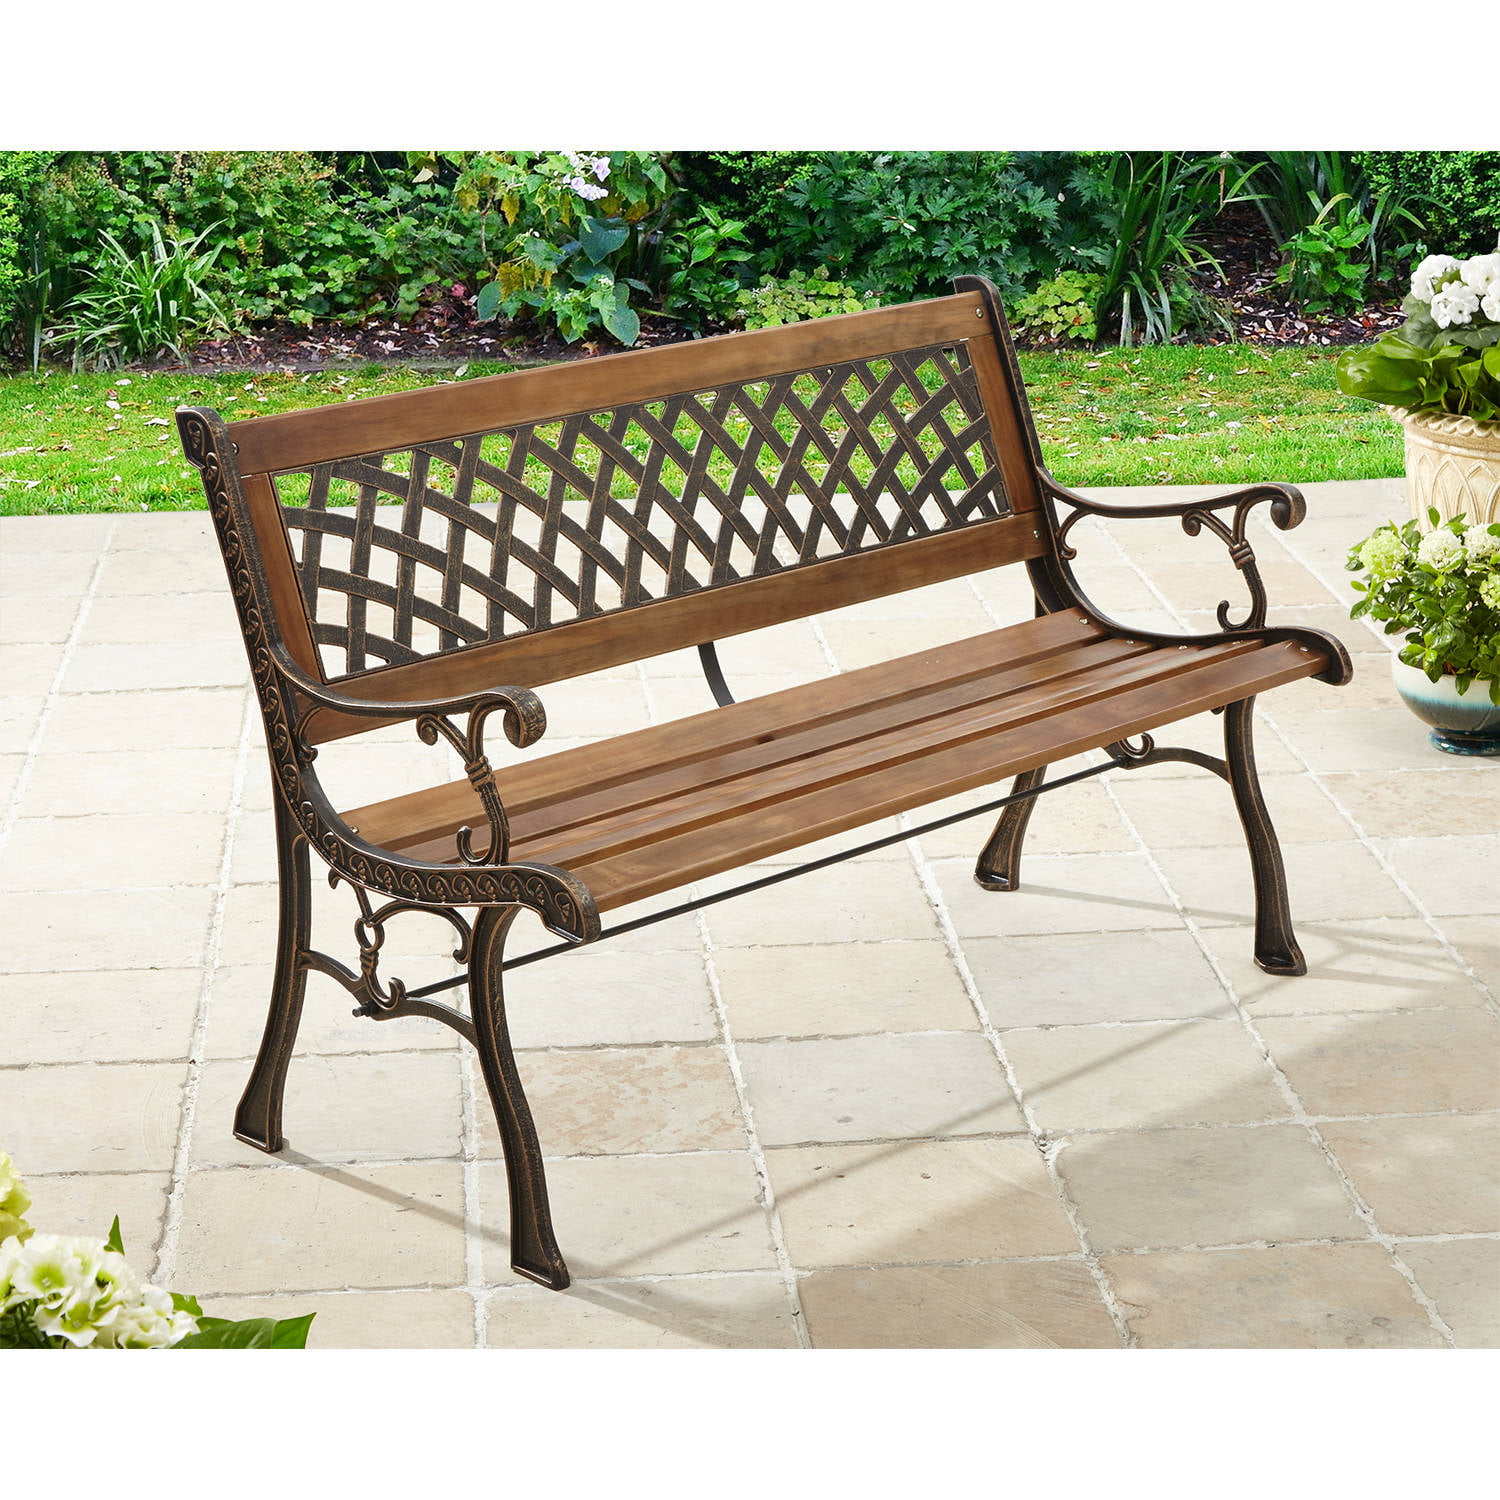 Better Homes and Gardens Lattice Outdoor Bench by